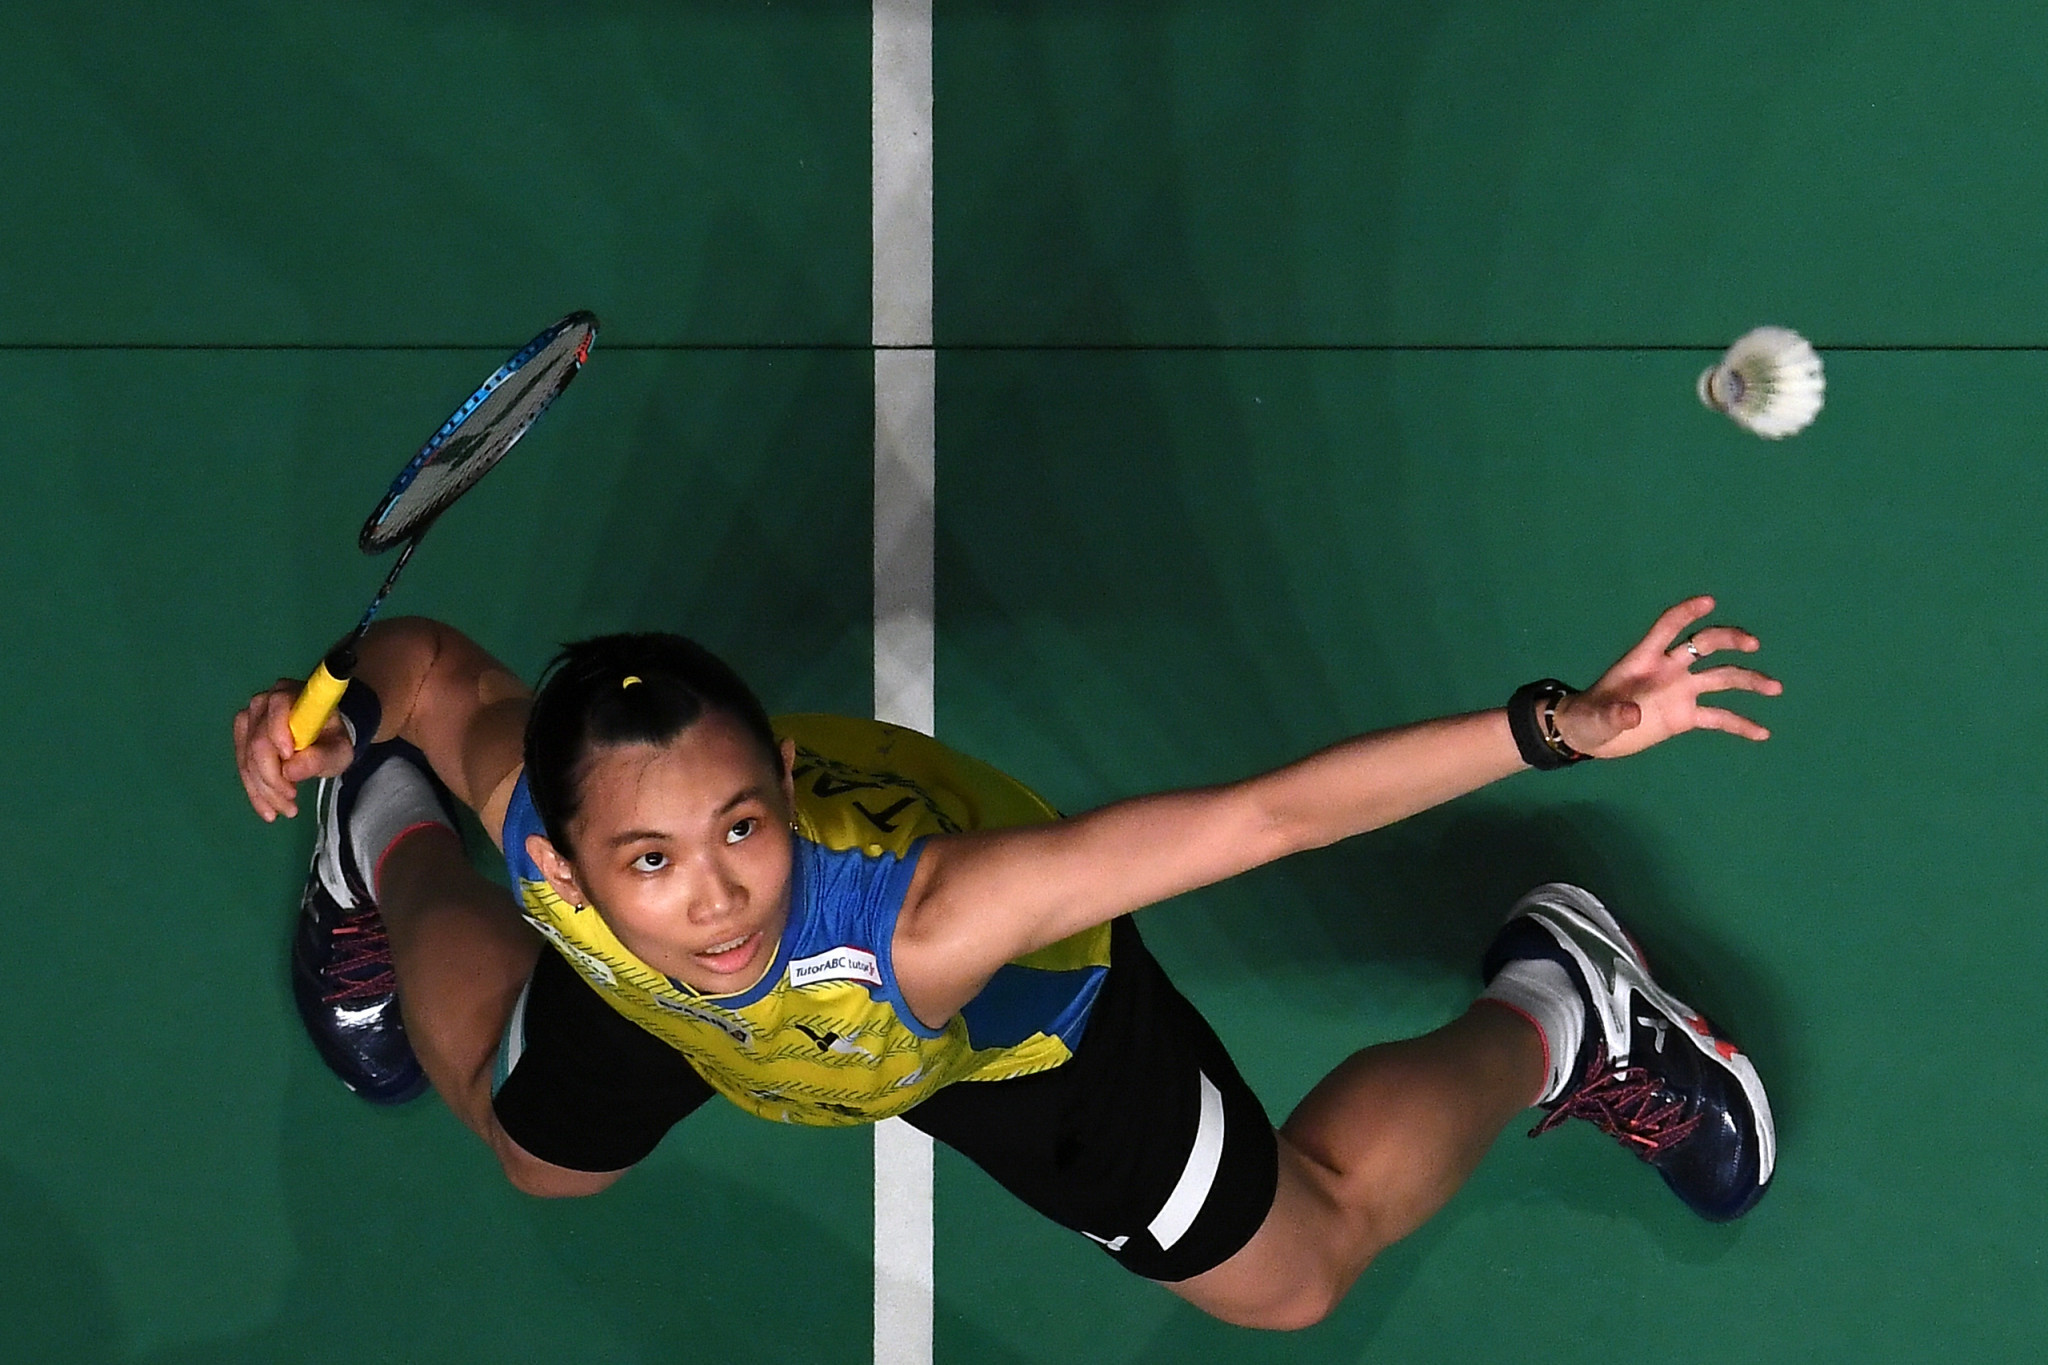 Top seed Tai Tzu-ying is through to the women's singles quarter-finals ©Getty Images